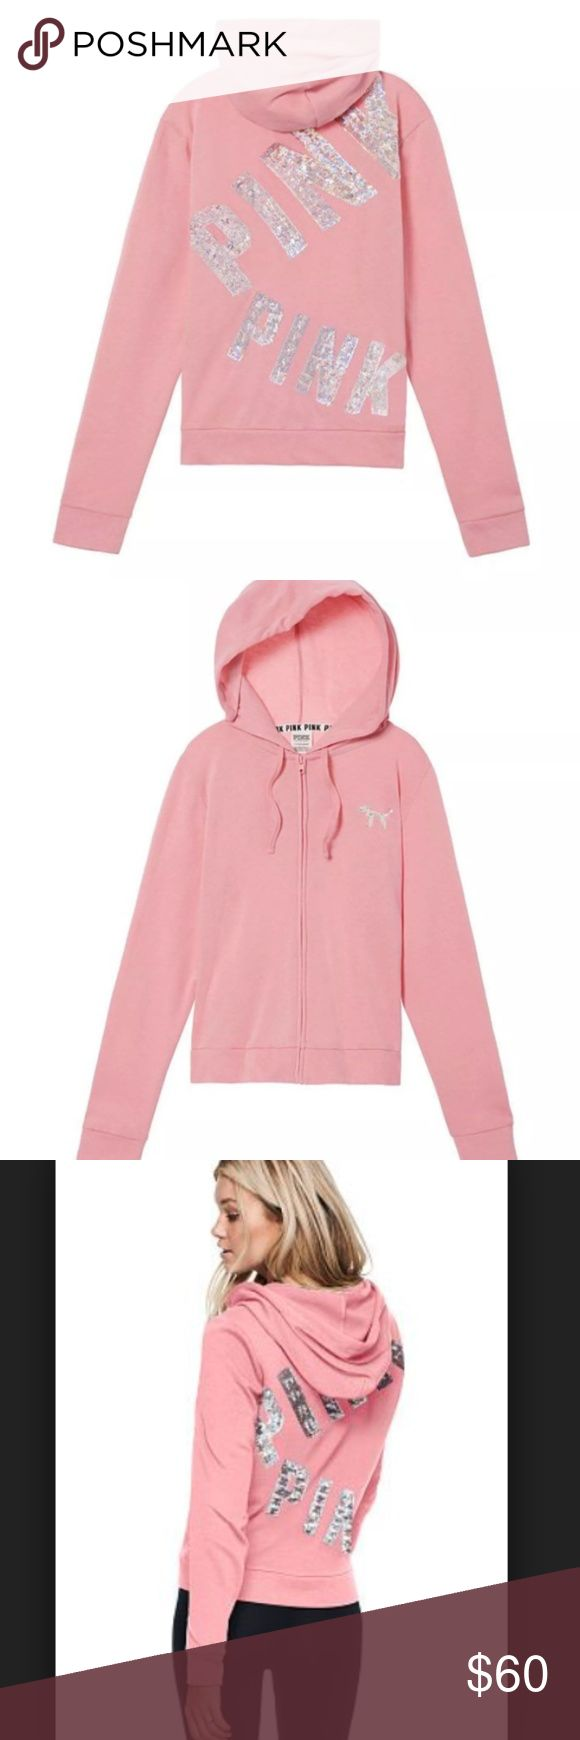 VS PINK Bling Perfect Full-Zip Hoodie! Online Exclusive Bling Perfect Full-Zip VS Pink Hoodie in Large. This size and color combo is sold out online.  Brand New in Original VS Online Packaging bag.  Slim fit plus cute graphics—perfection in a hoodie. Slim fit Imported cotton/polyester PINK Victoria's Secret Tops Sweatshirts & Hoodies